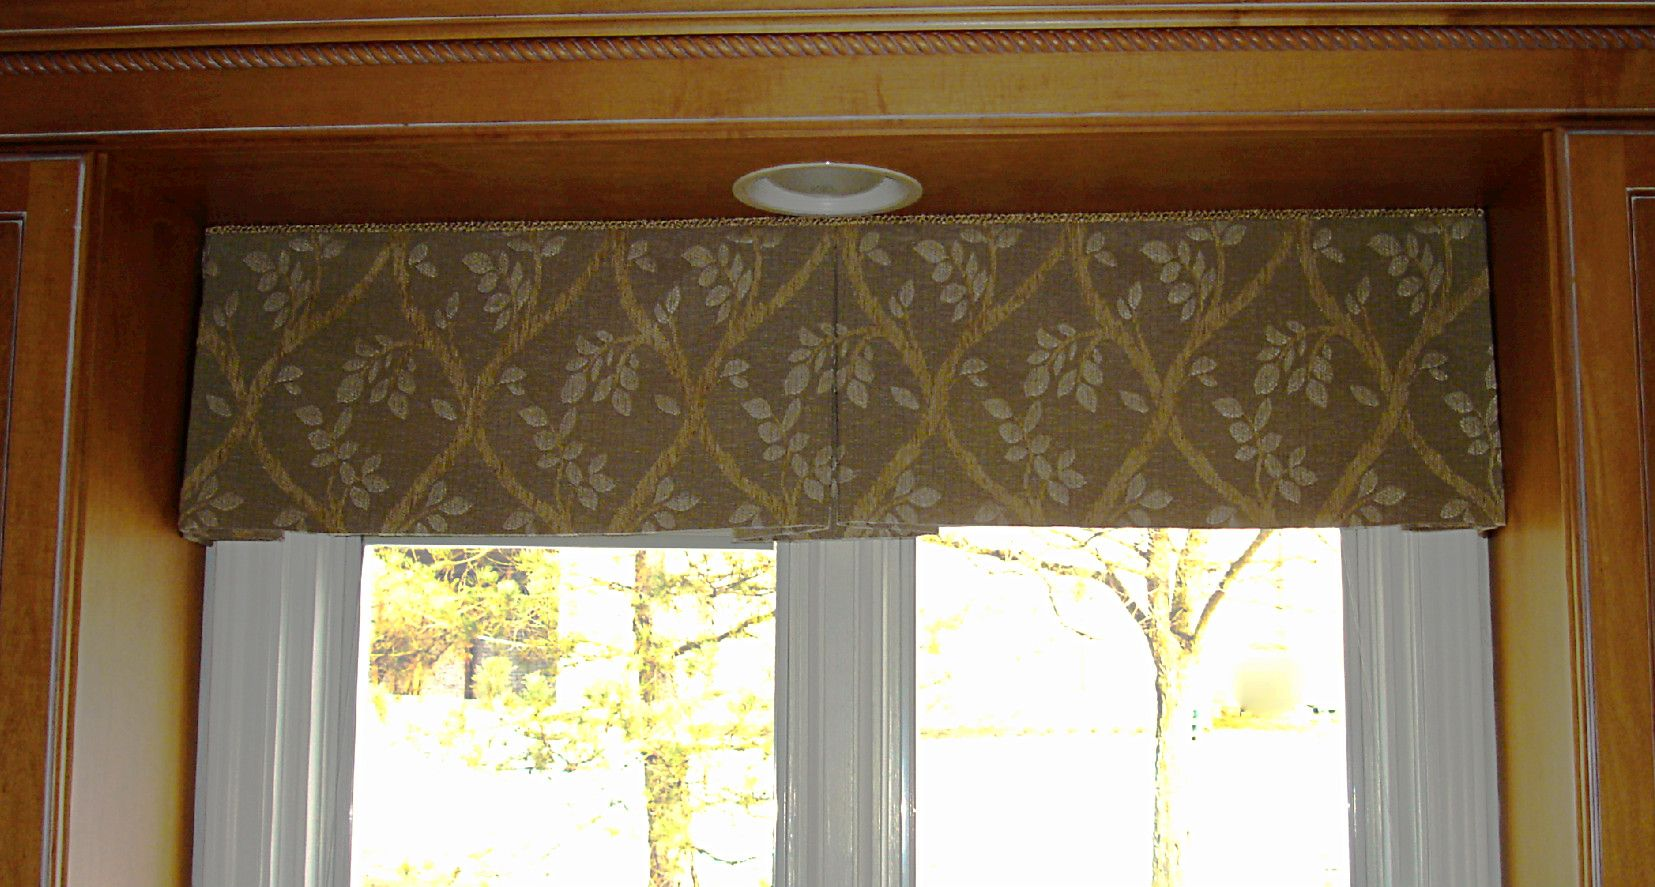 windows kitchen pate expand designs tutorial to valances simple patterns meadows valance org recyclenebraska curtain click window for drapery stunning compelling sew ideas design our free